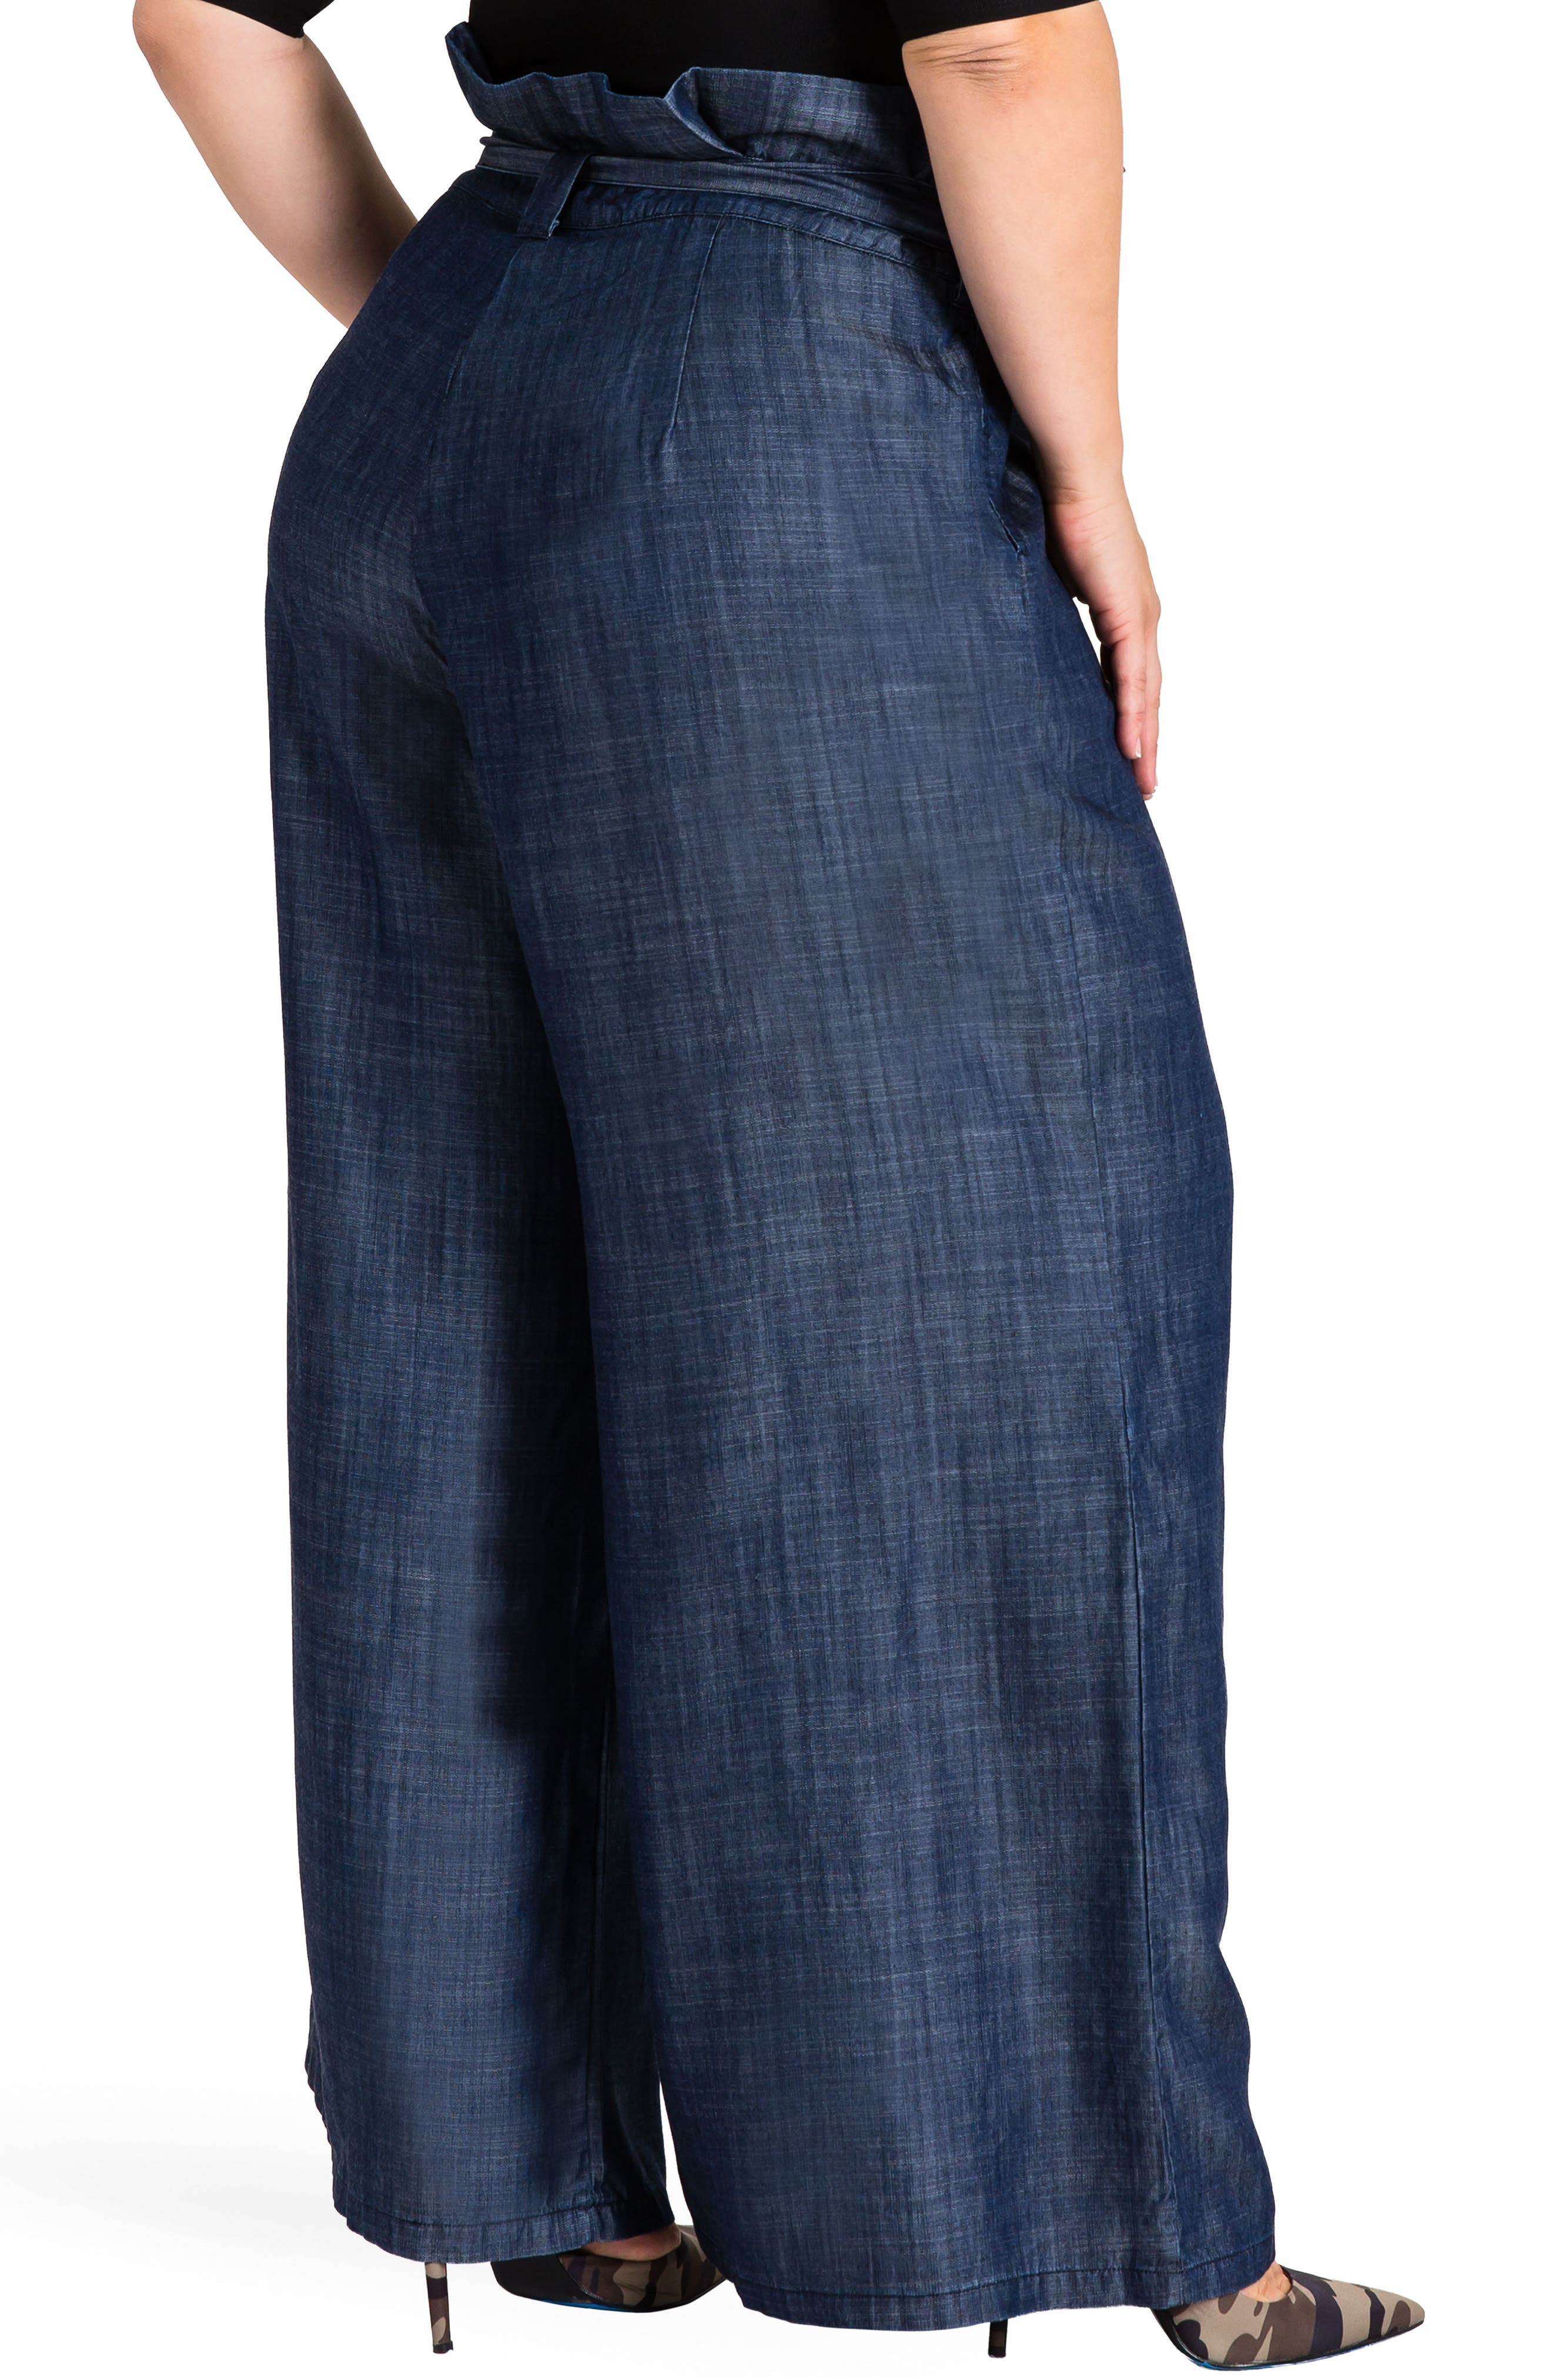 STANDARDS & PRACTICES, Cleo Wide Leg Pants, Alternate thumbnail 3, color, DARK BLUE